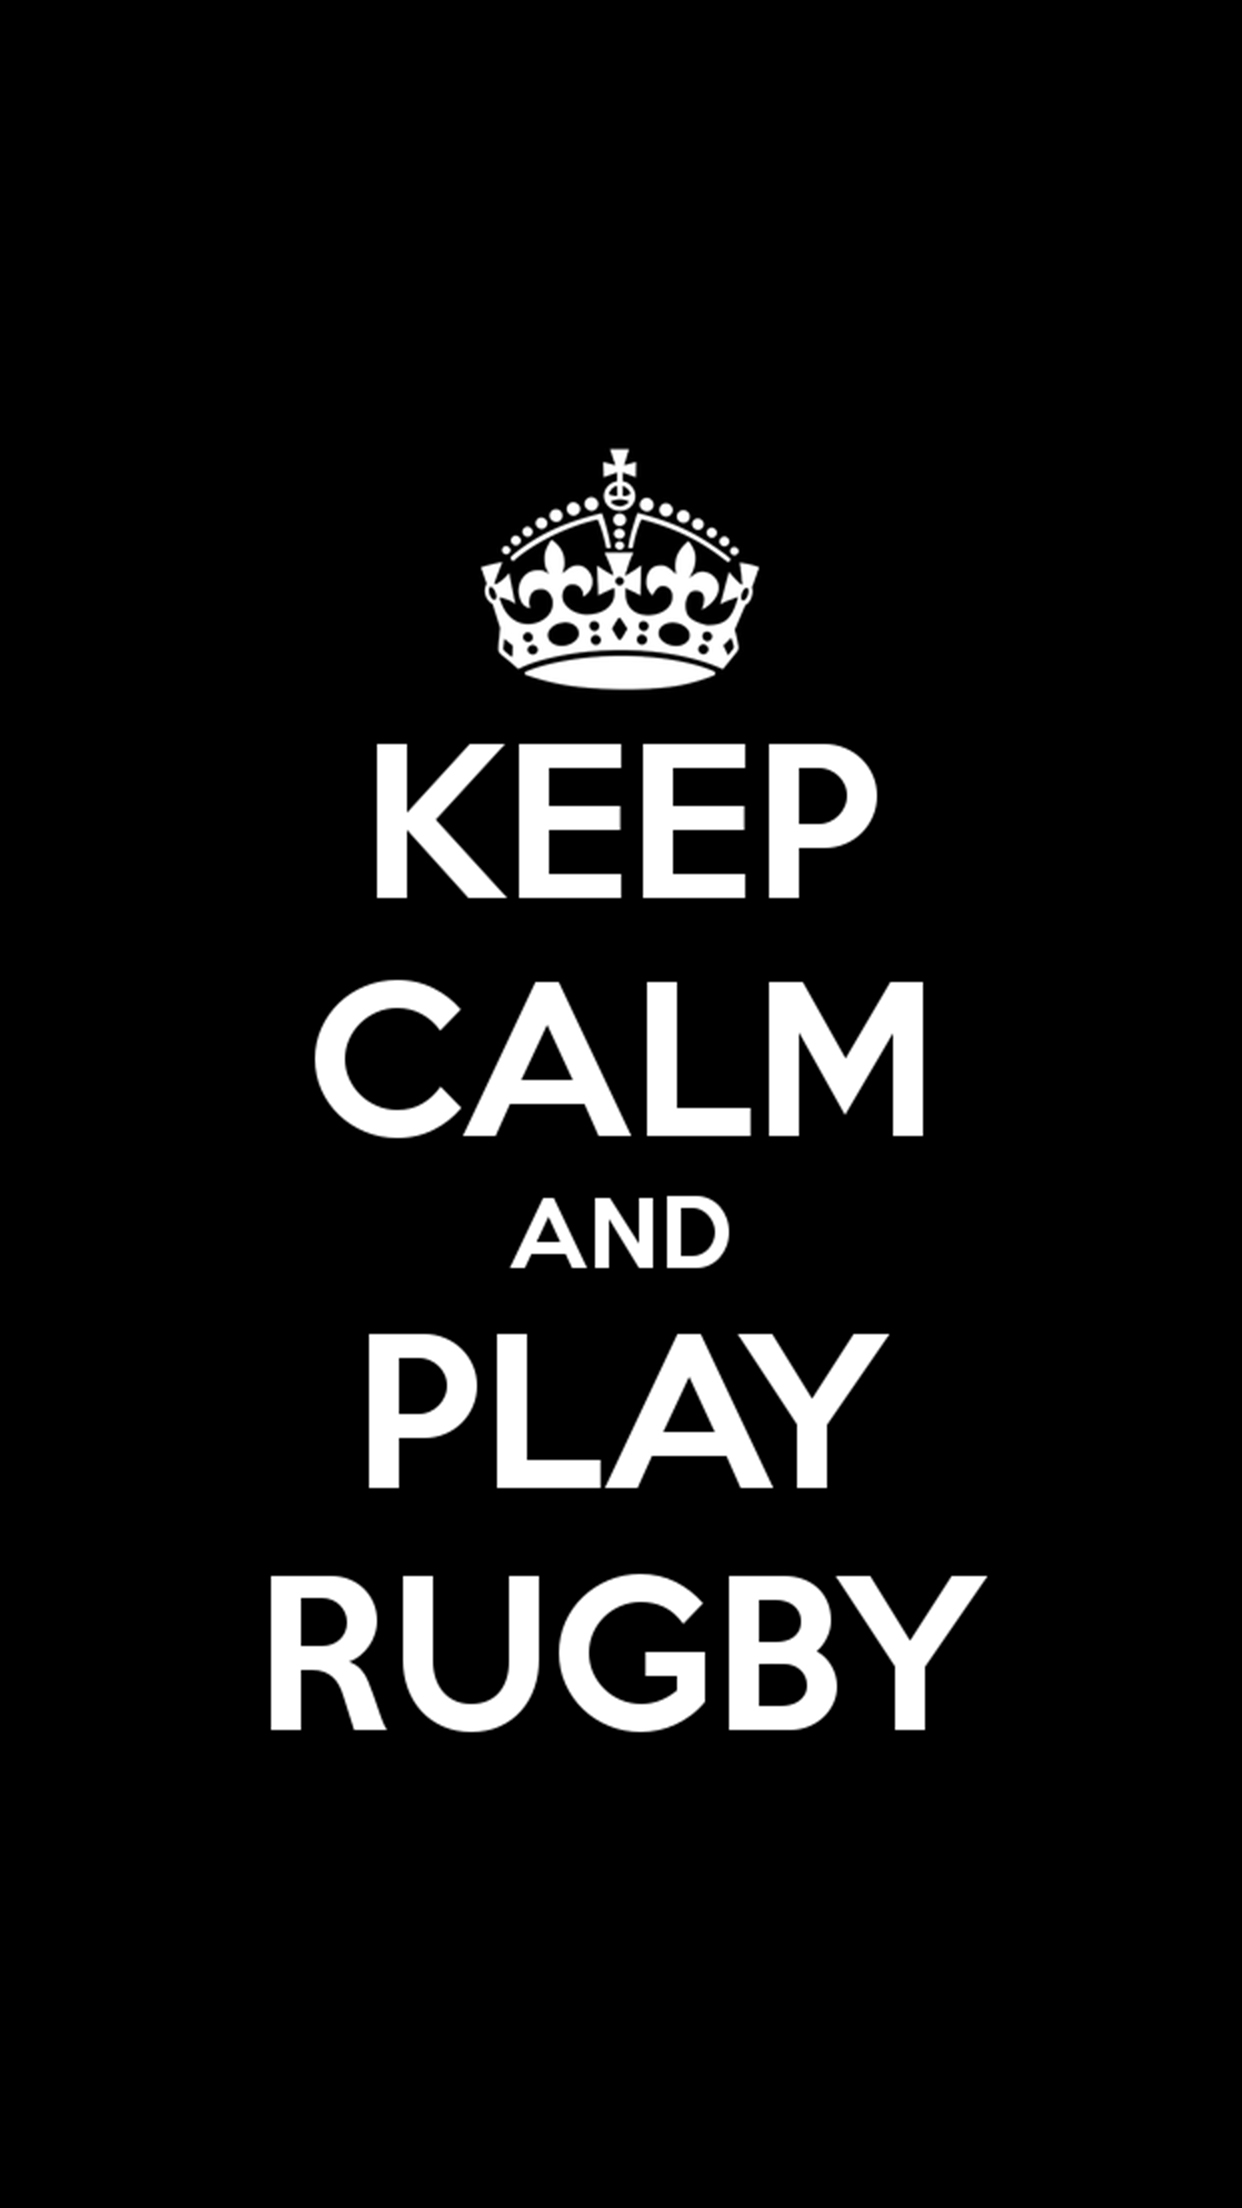 Rugby Keep Calm Wallpaper For Iphone X 8 7 6 Free